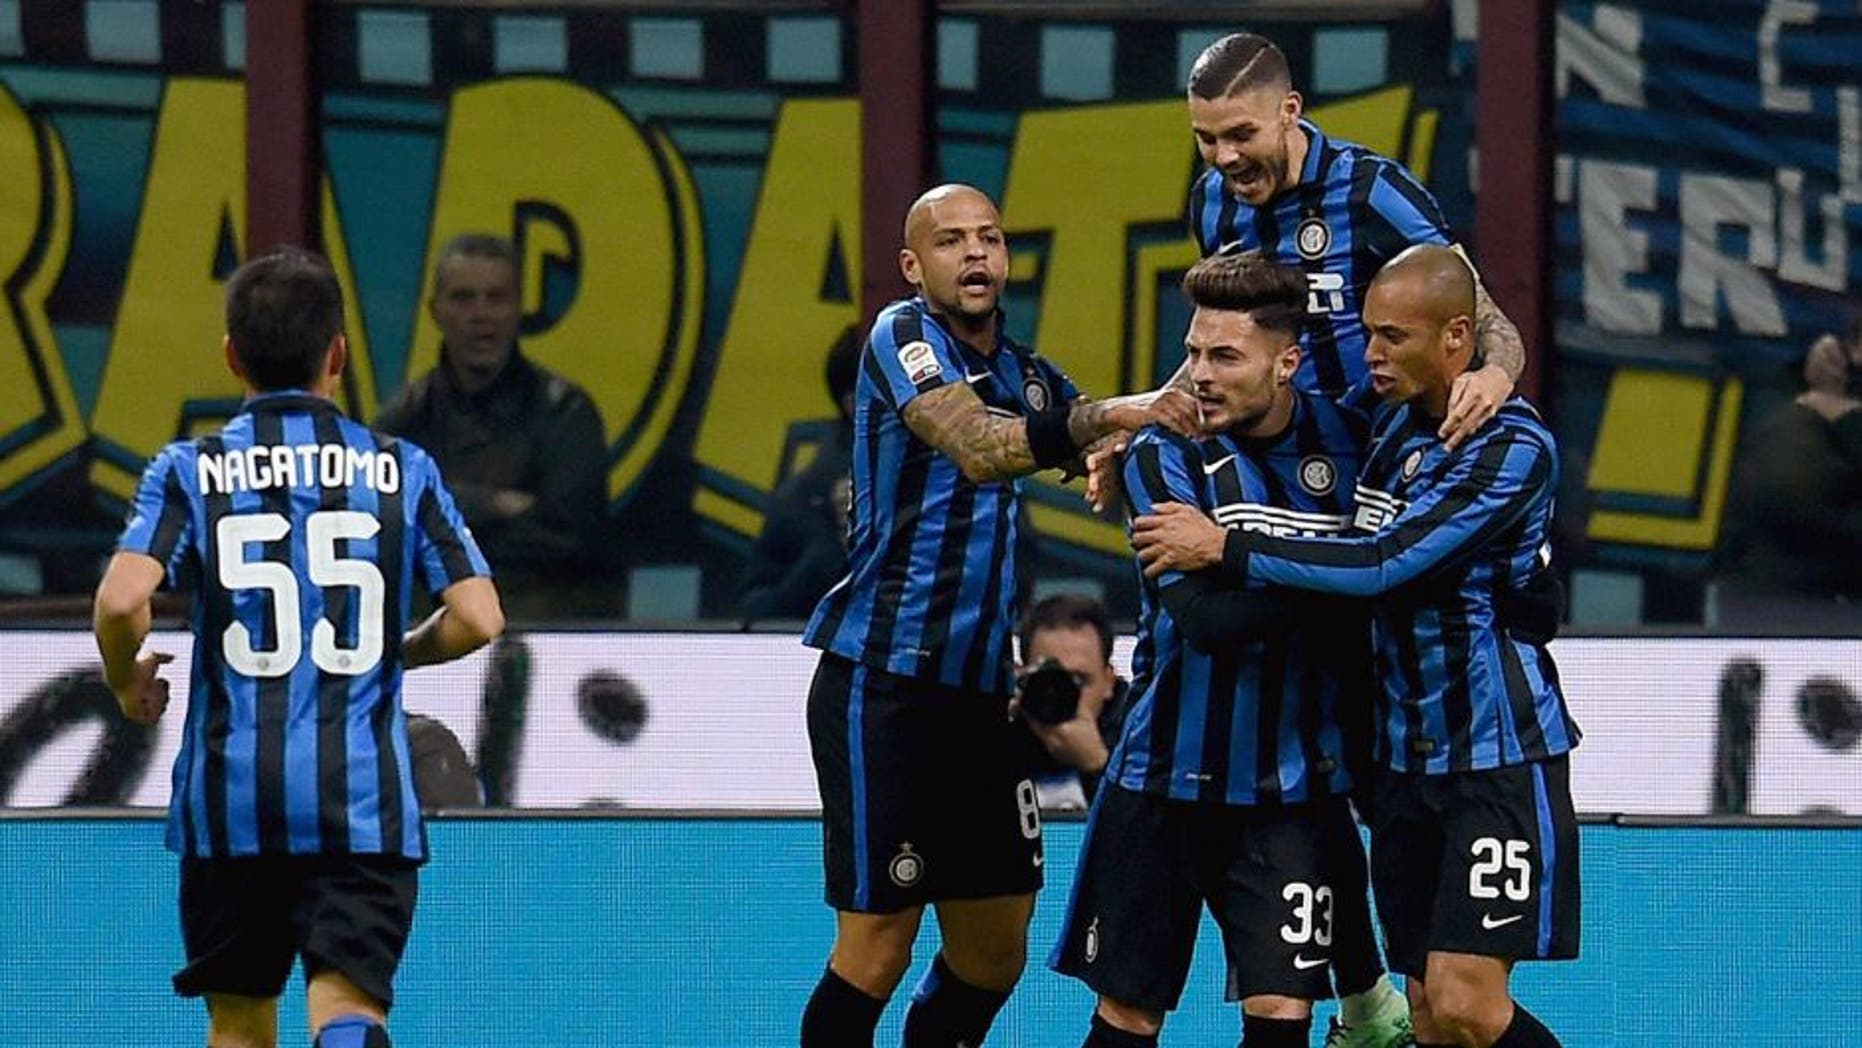 MILAN, ITALY - FEBRUARY 20: Danilo D'Ambrosio of FC Internazionale (C) celebrates after scoring the opening goal during the Serie A match between FC Internazionale Milano and UC Sampdoria at Stadio Giuseppe Meazza on February 20, 2016 in Milan, Italy. (Photo by Claudio Villa - Inter/Inter via Getty Images)